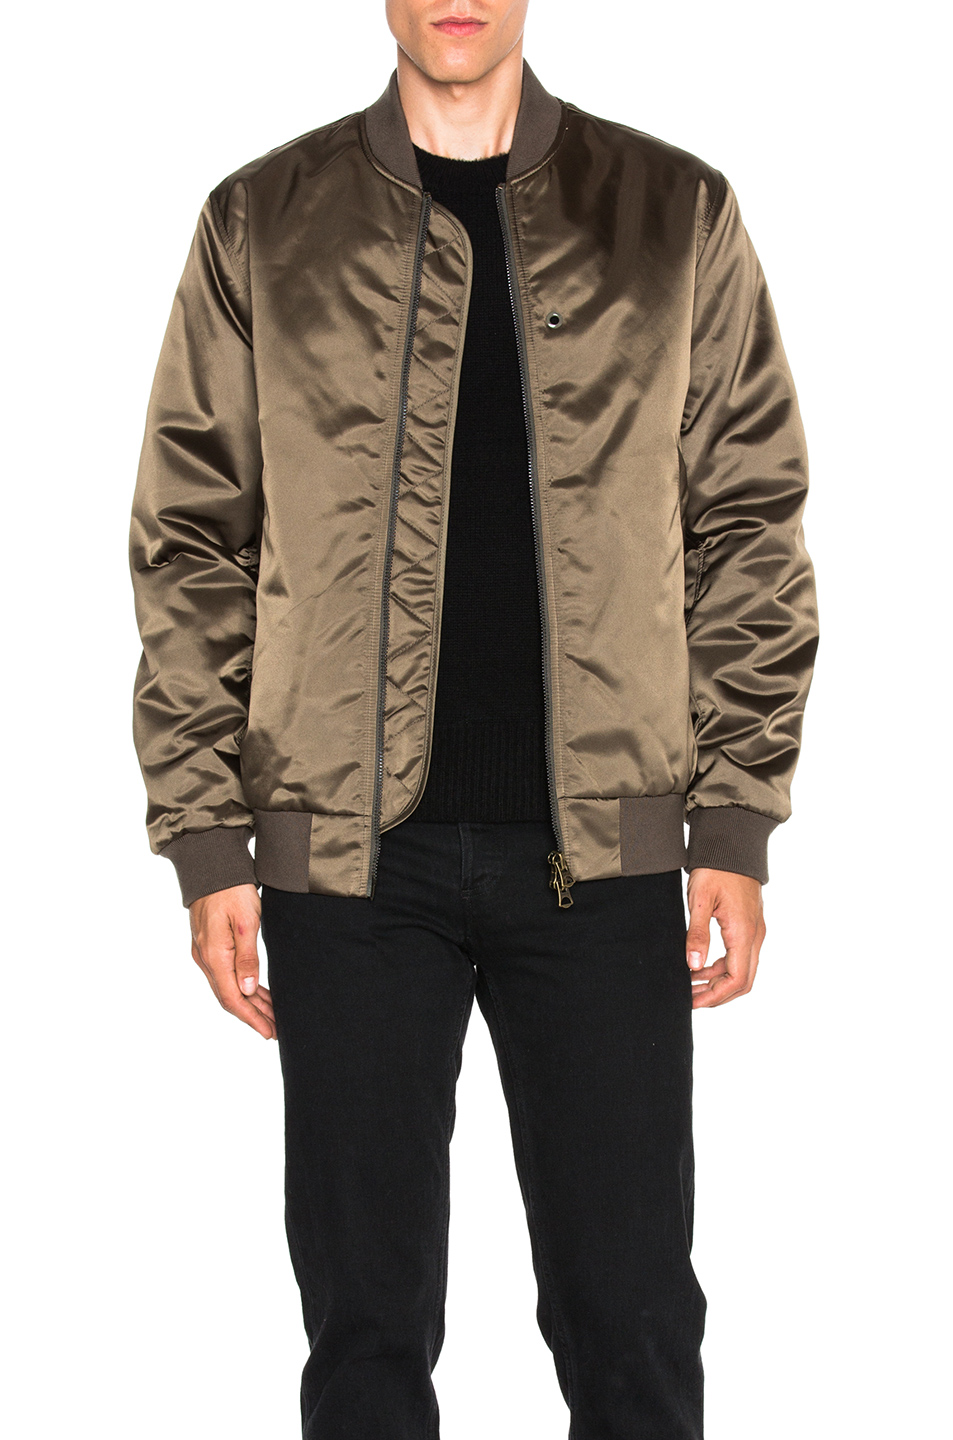 Photo of Acne Studios Selo Bomber Jacket in Green - shop Acne Studios menswear